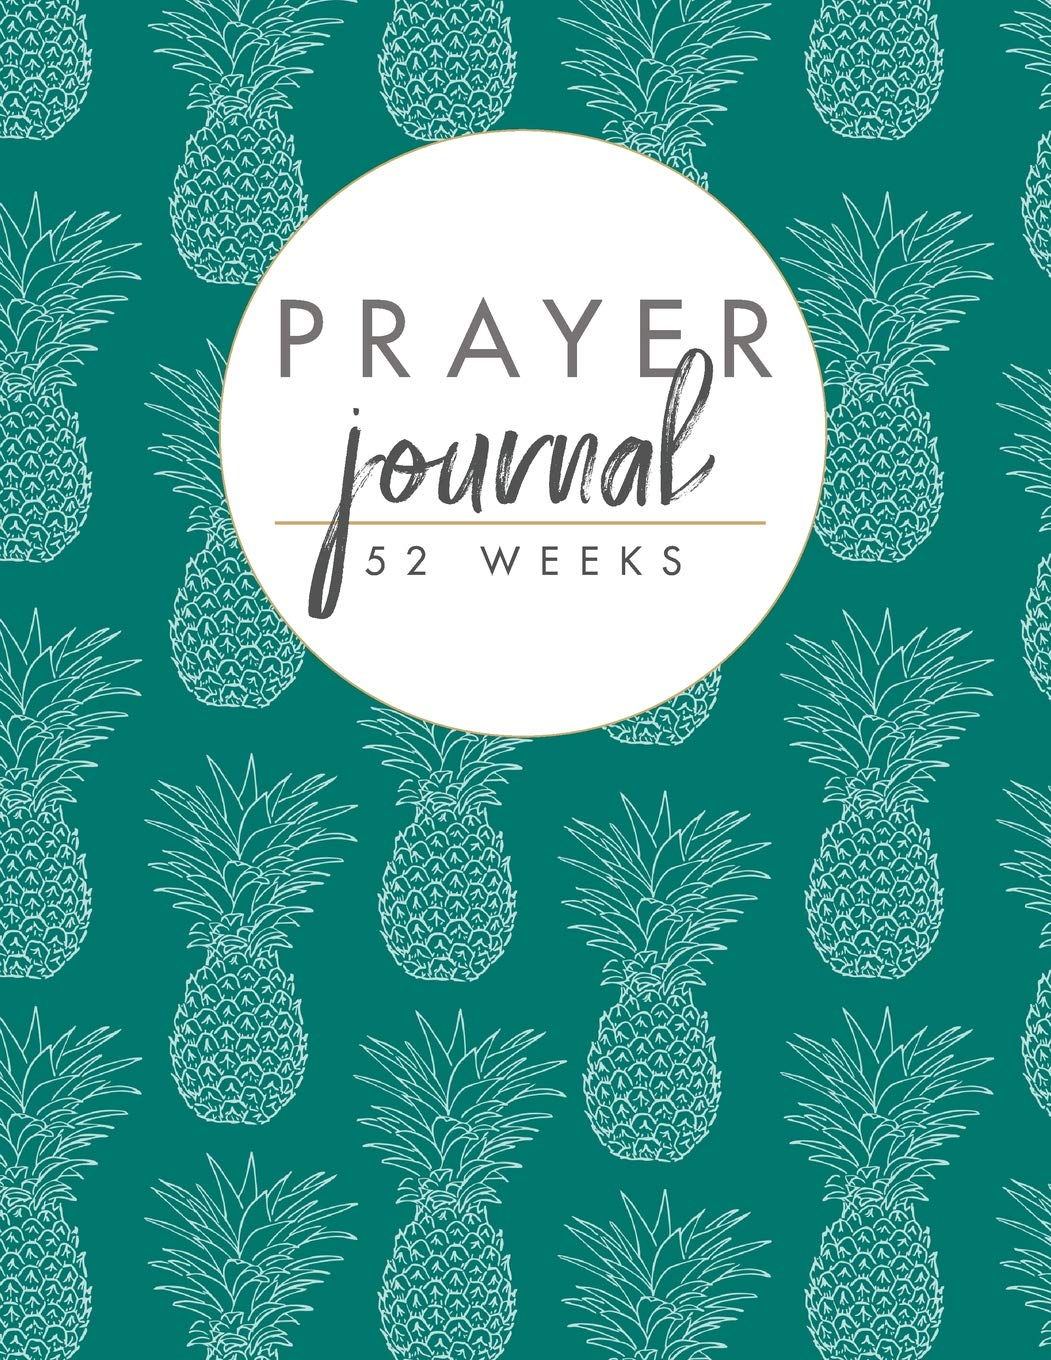 Prayer Journal 52 Weeks: For Men to write in daily with